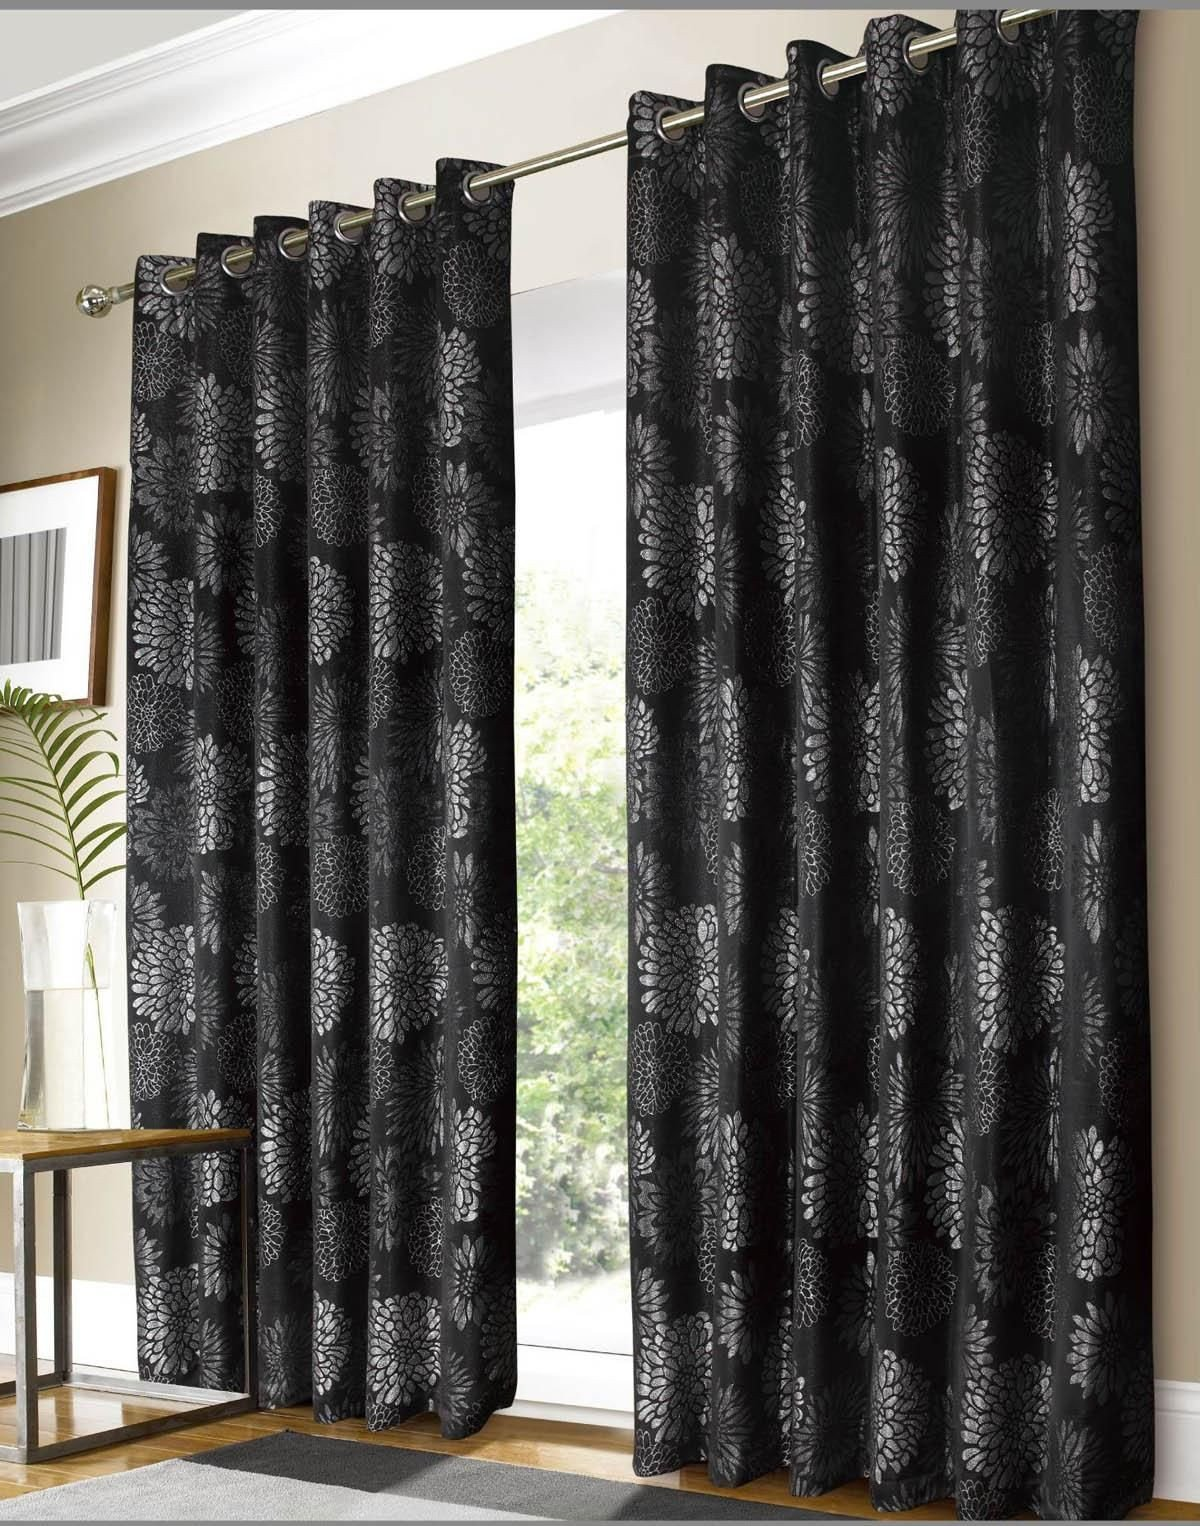 Black Curtains for Bedroom Elegant Black and Silver Curtains